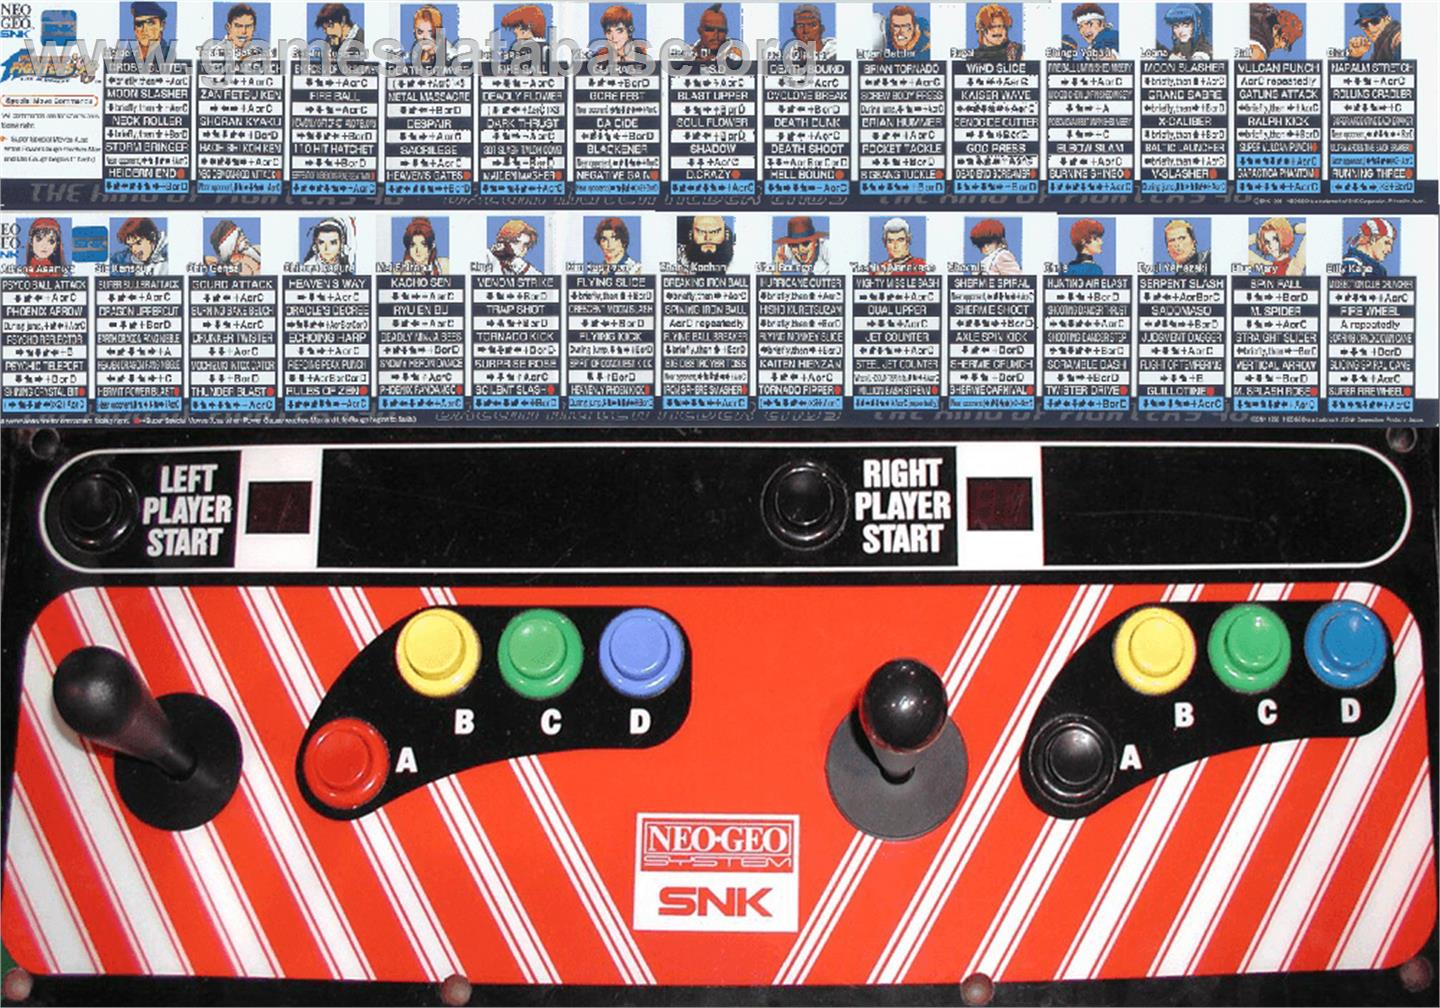 The King of Fighters '98 - The Slugfest / King of Fighters '98 - dream match never ends - Arcade - Artwork - Control Panel